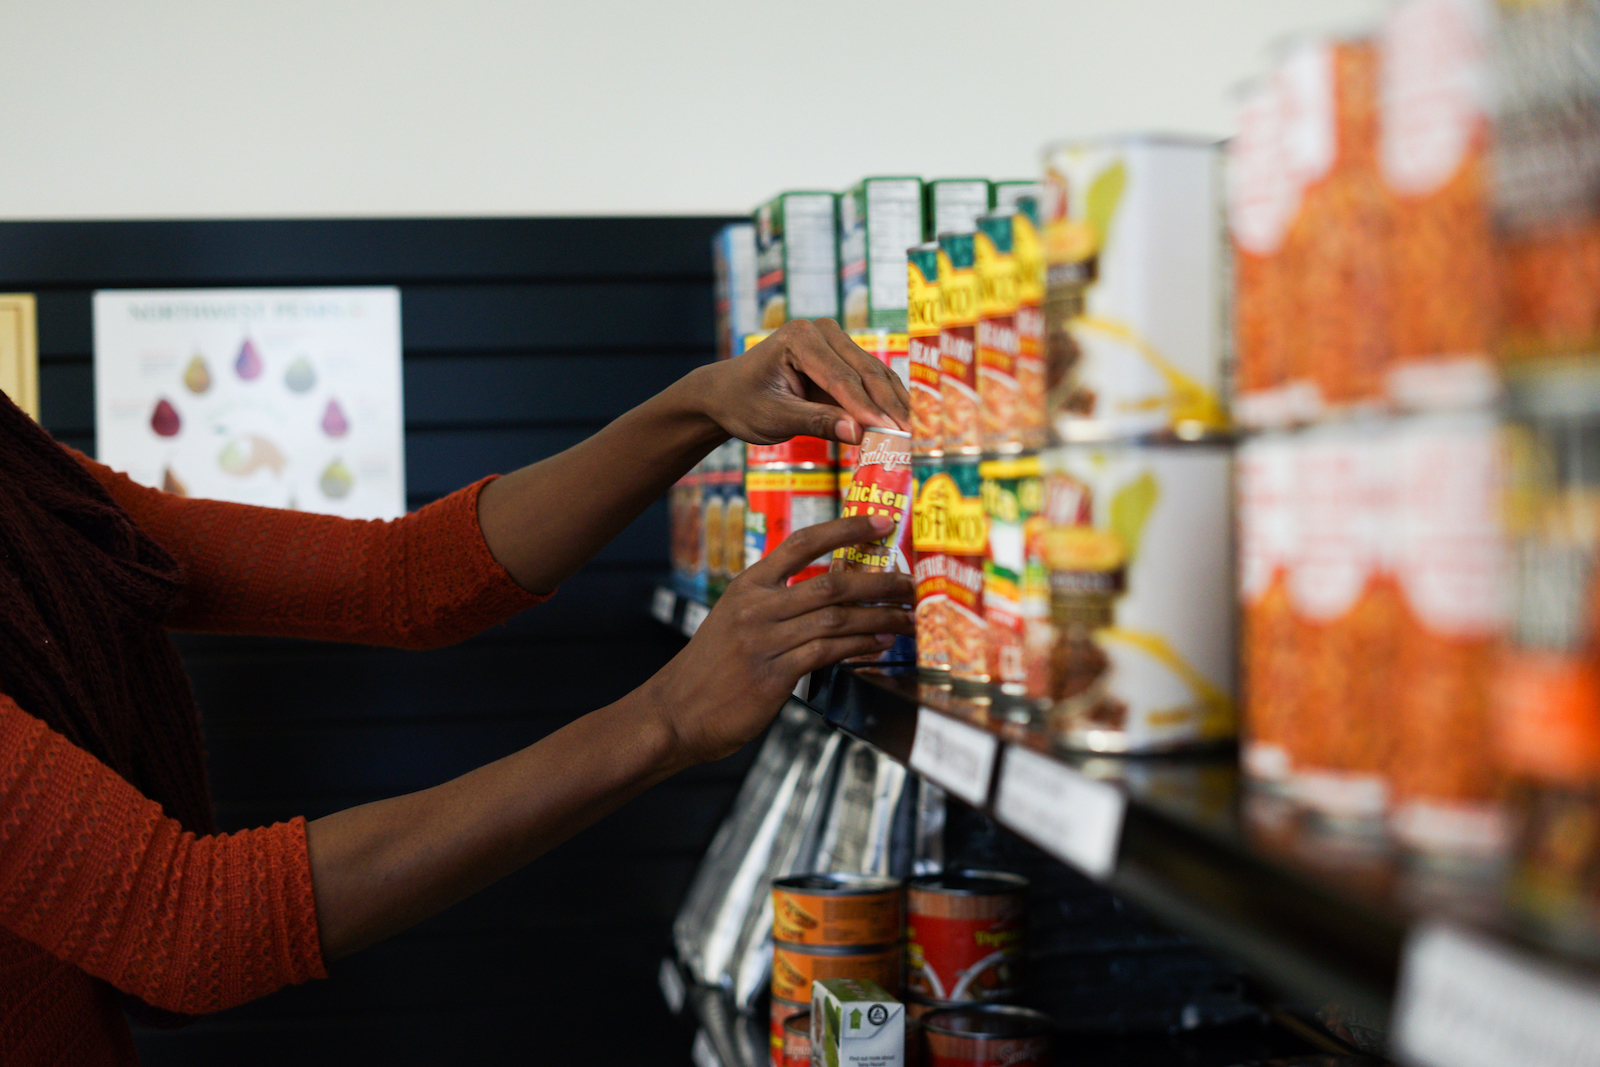 A person is restocking shelves with cans of food